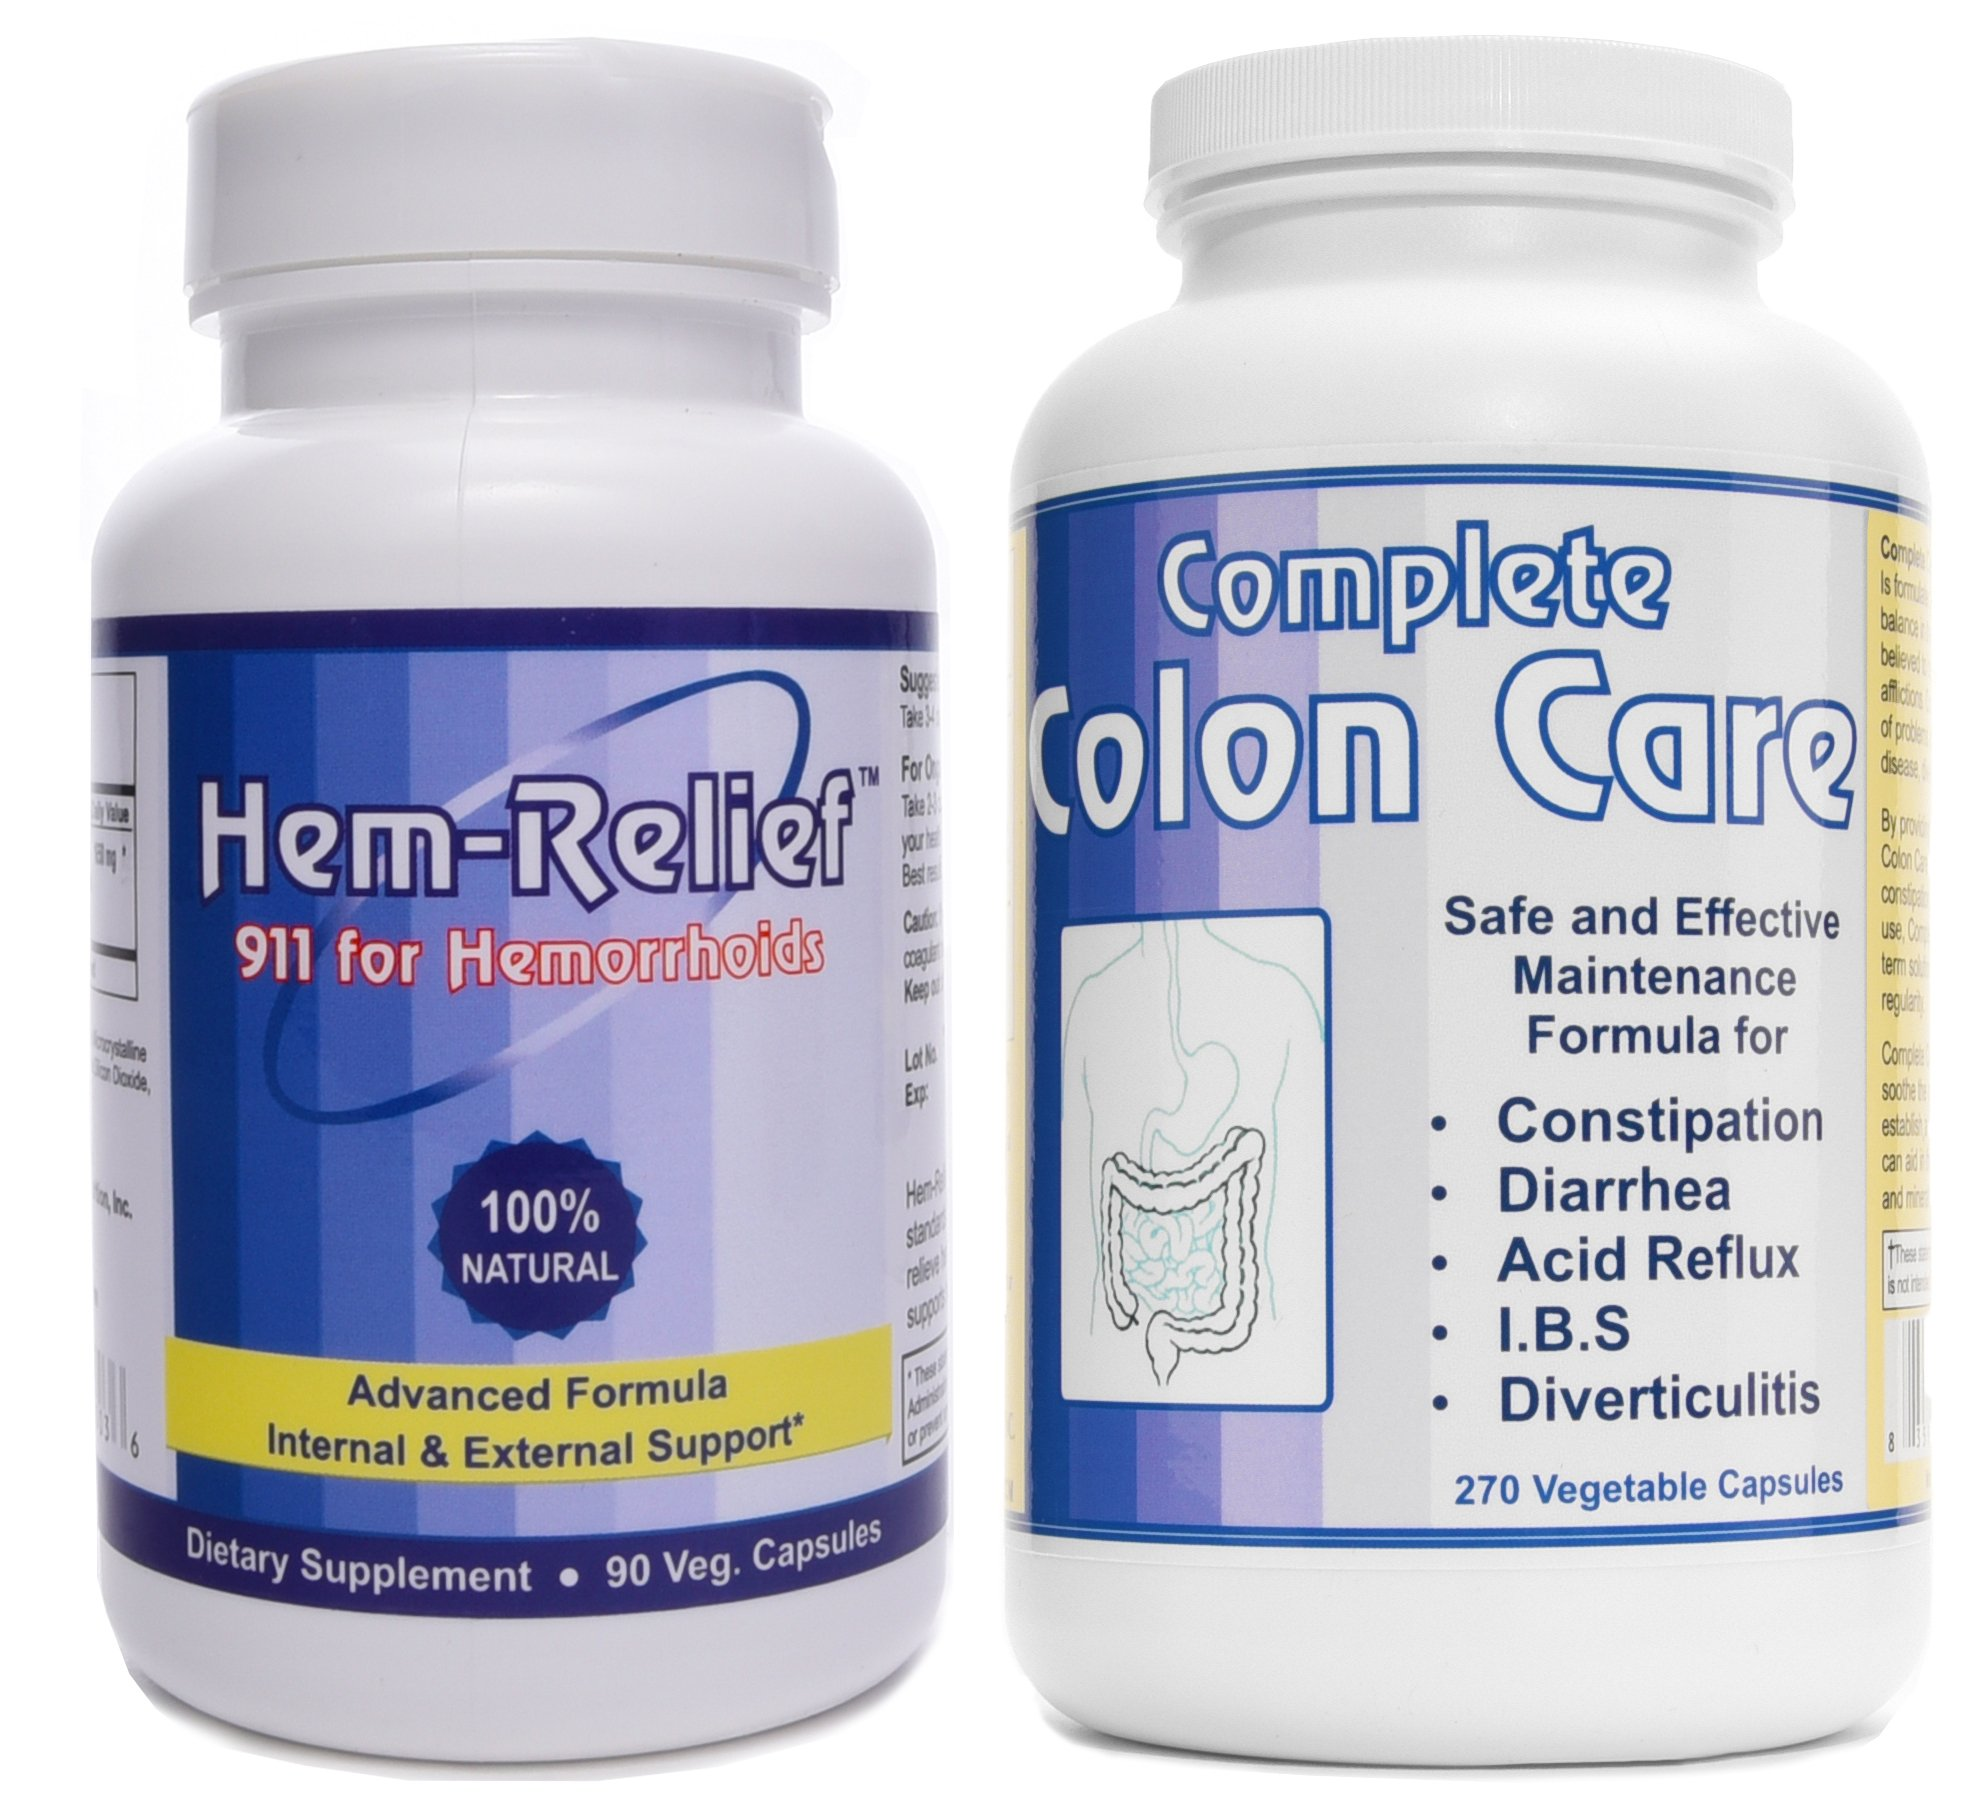 Western Herbal and Nutrition | Hem-Relief (90 caps) & Complete Colon Care (270 caps) | Advanced Hemorrhoid Care | 100% Natural Formula | Internal & External Support | 2 Bottle Pack by Hem Relief